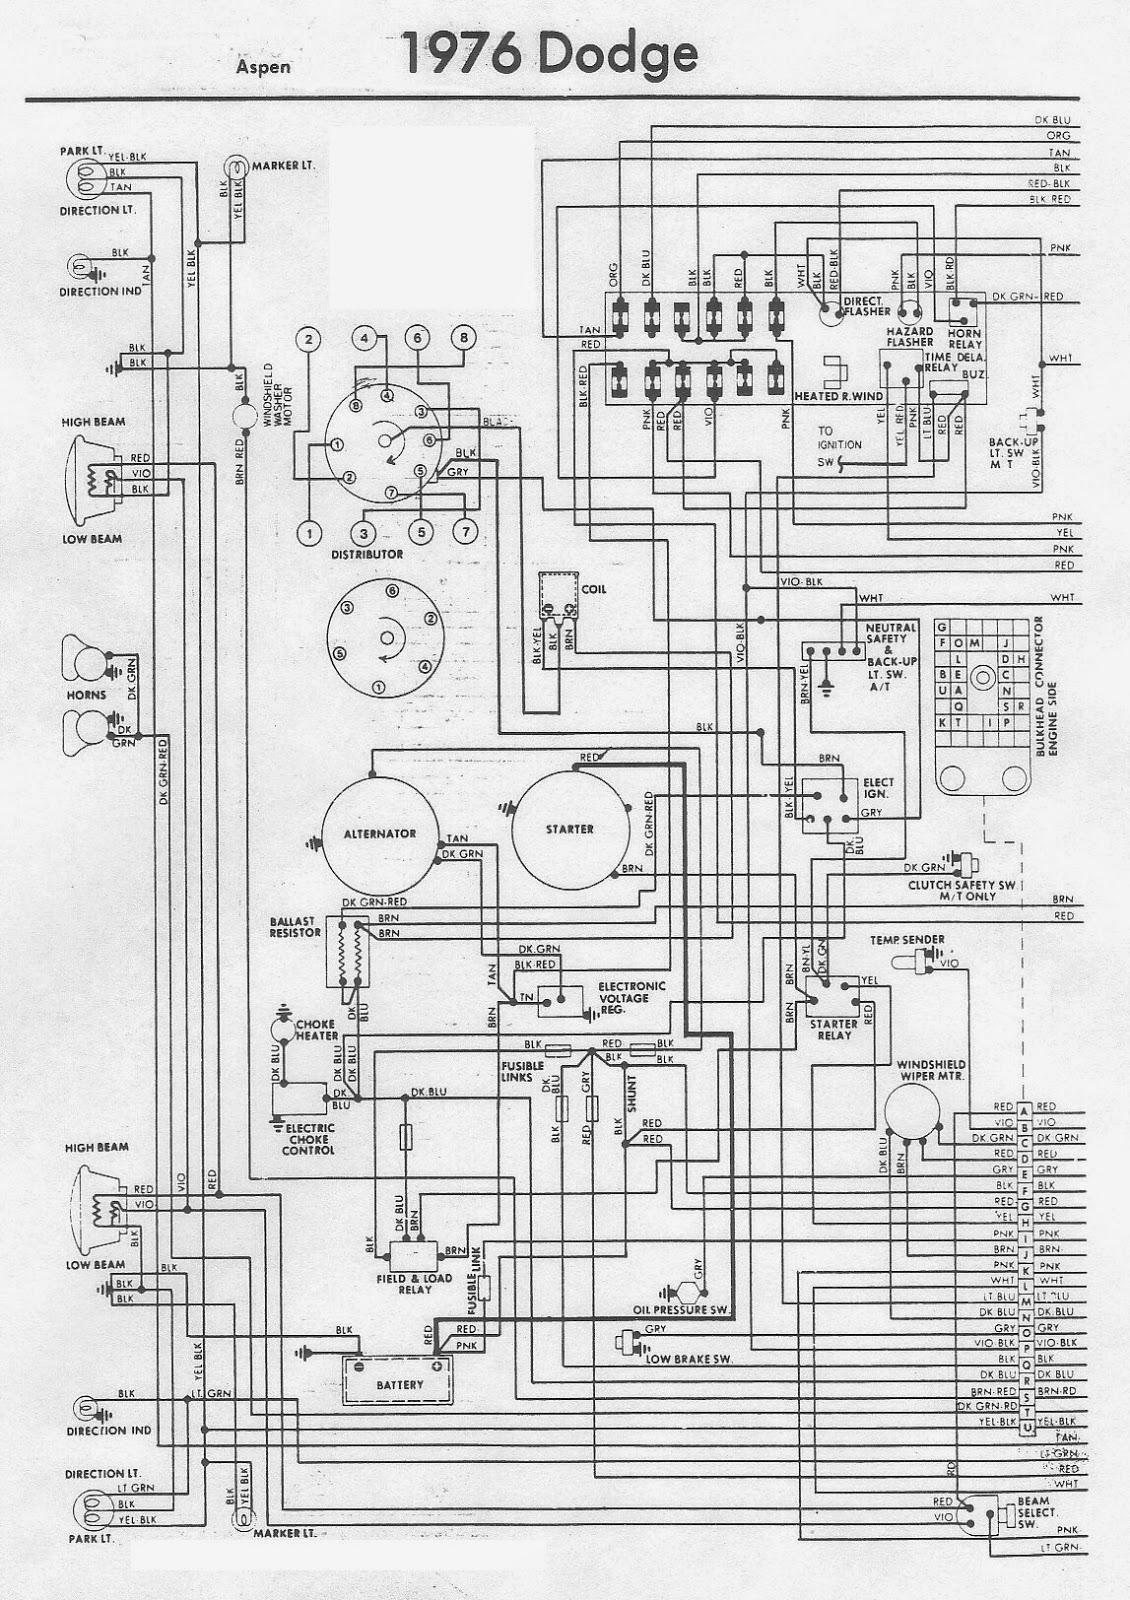 The 1976 Dodge Aspen Wiring Diagram Electrical System ...